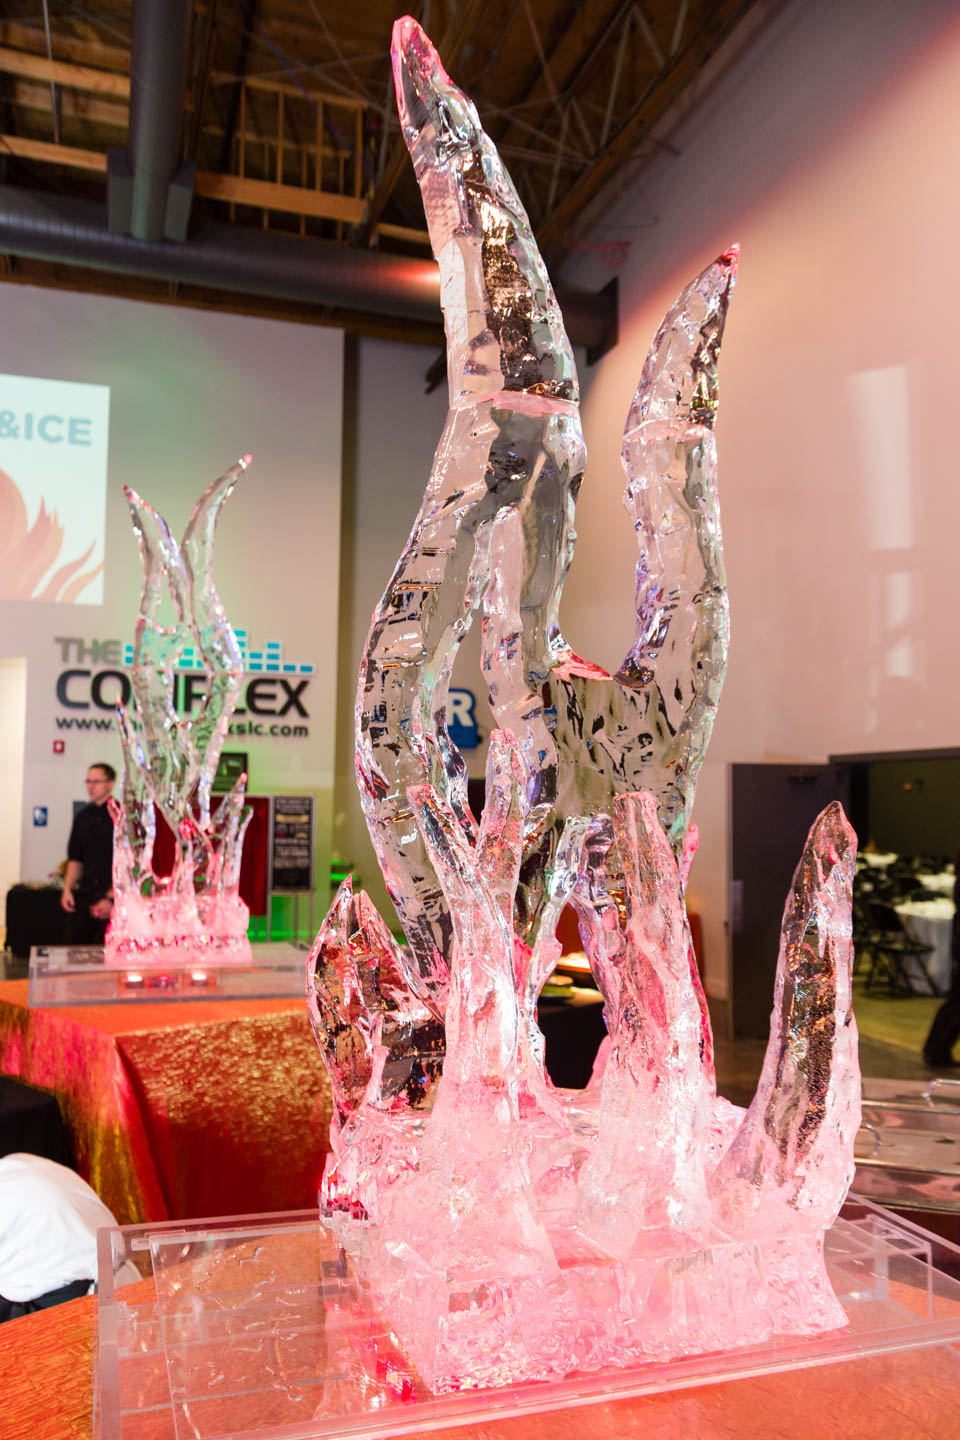 Ice sculptures at The Complex